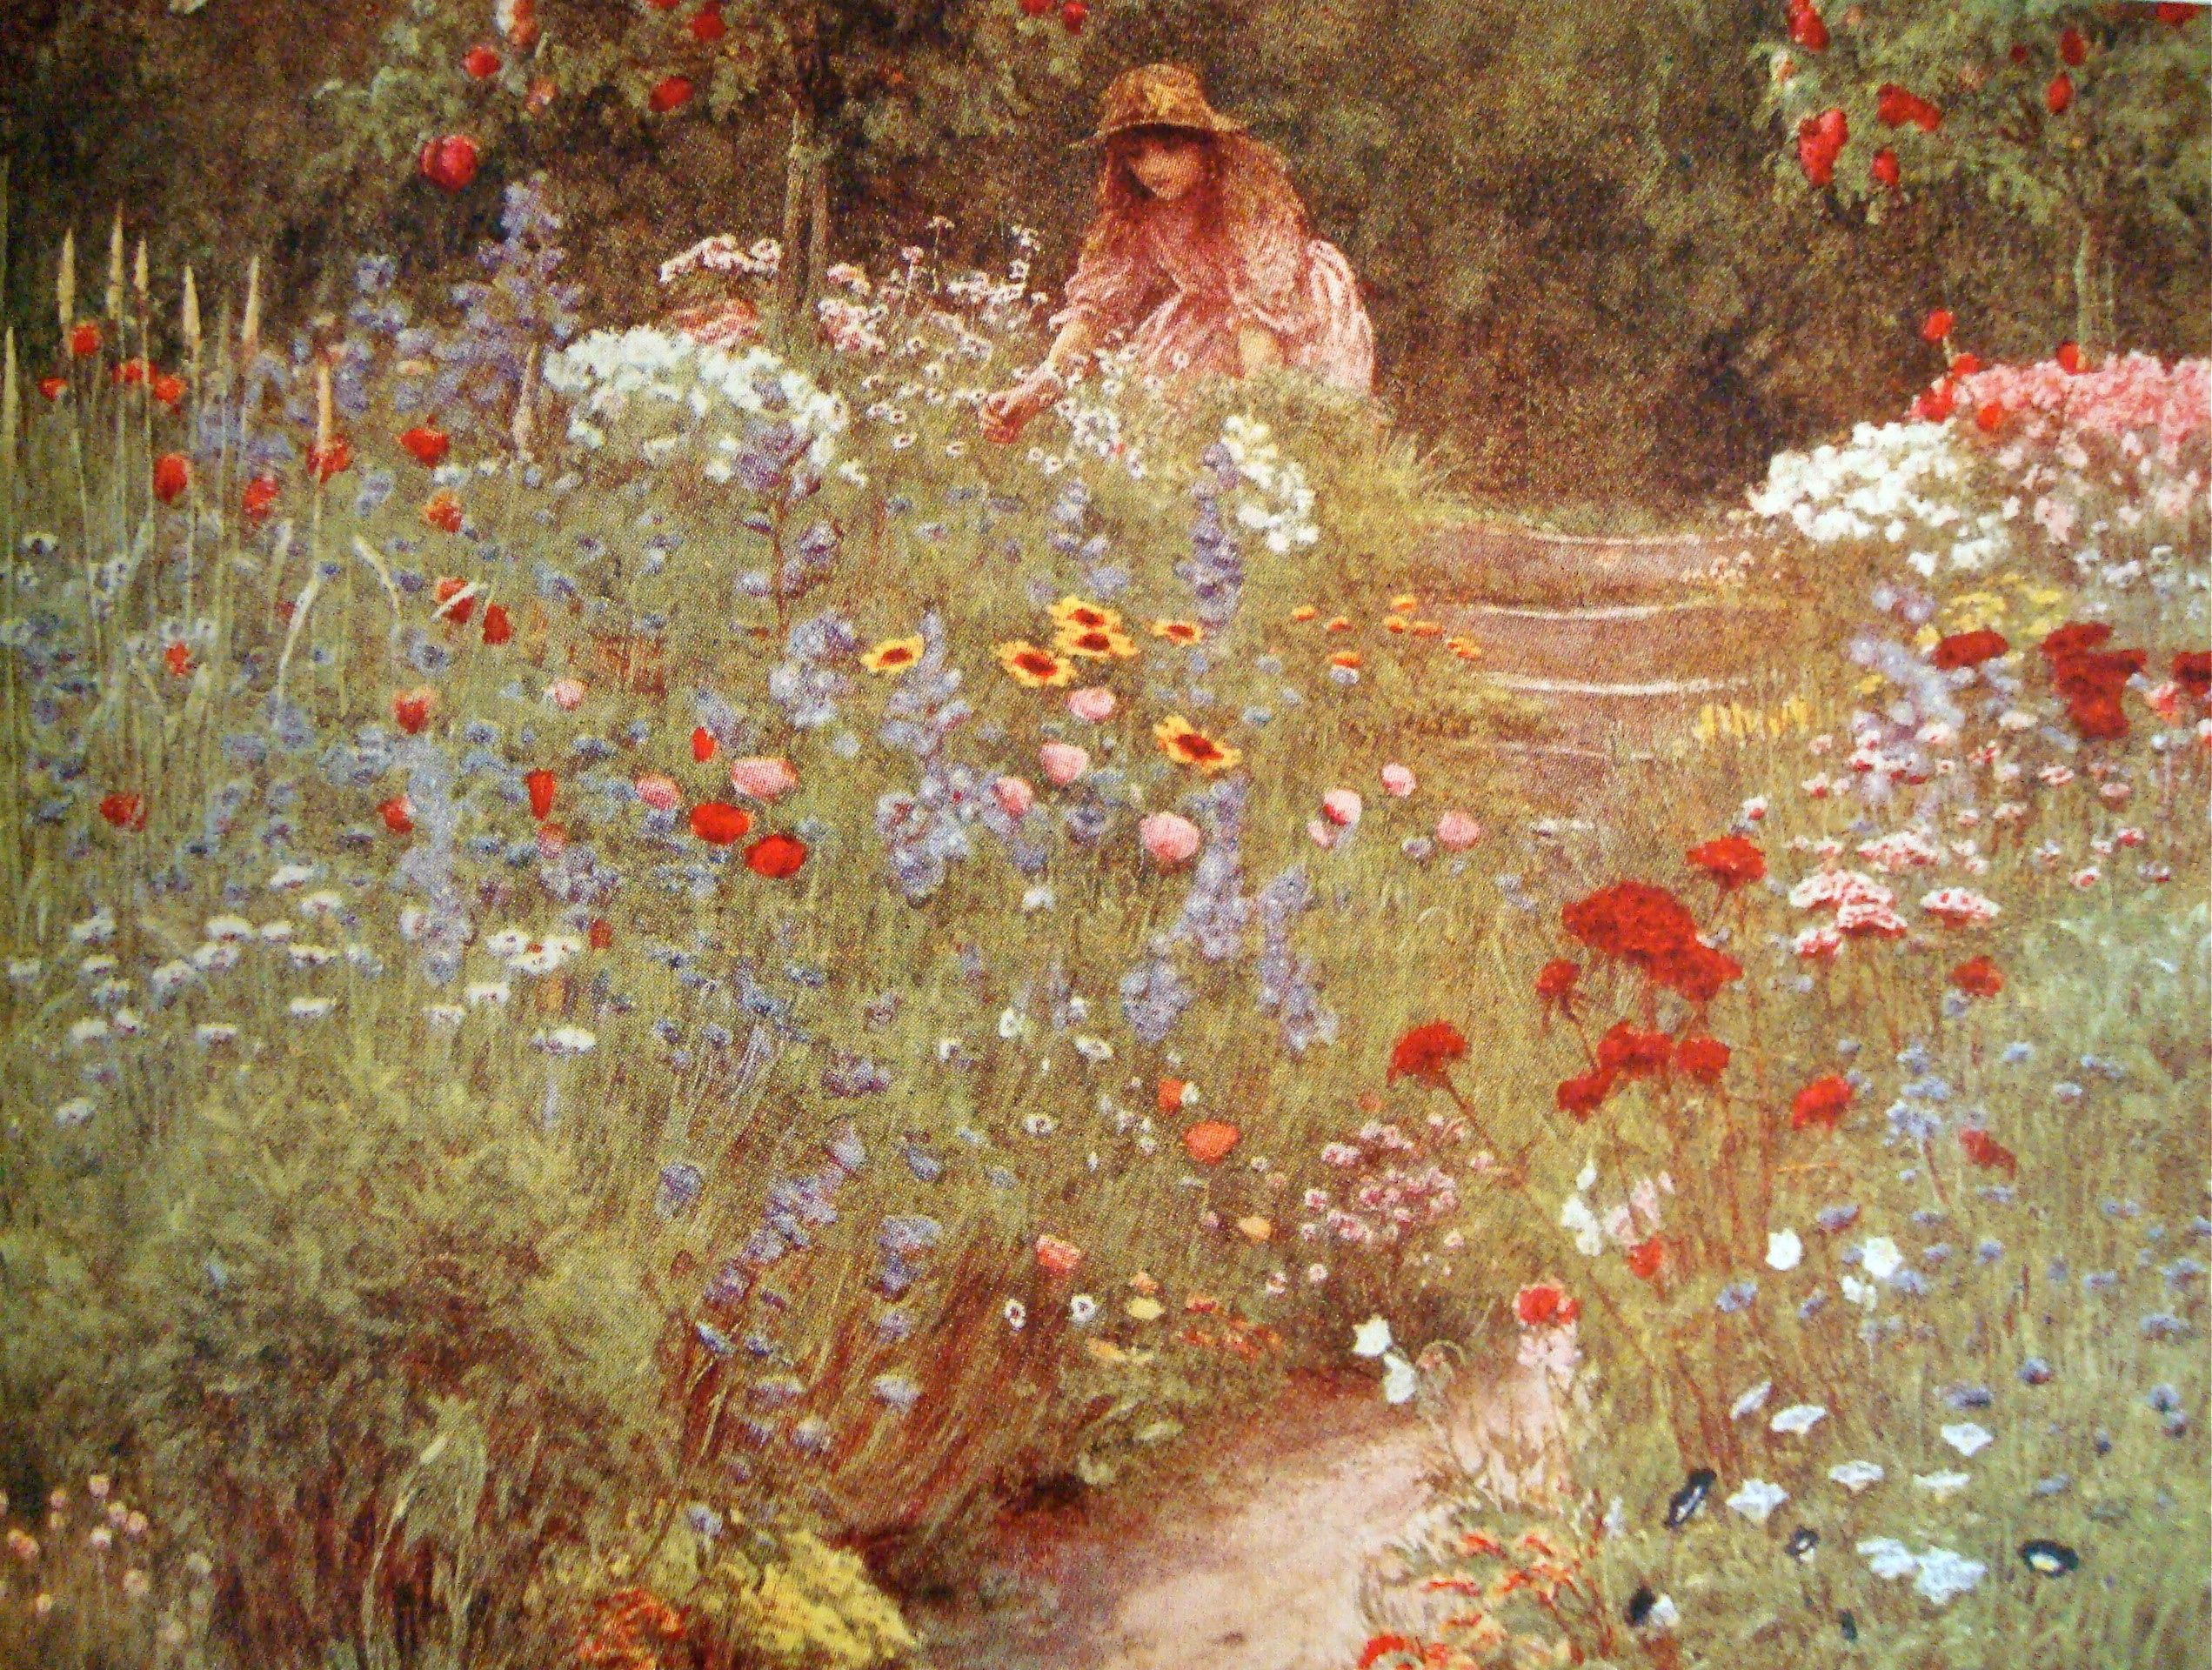 English Cottage Garden By Helen Allingham Gartenmalerei Gartenkunst Englische Land Garten